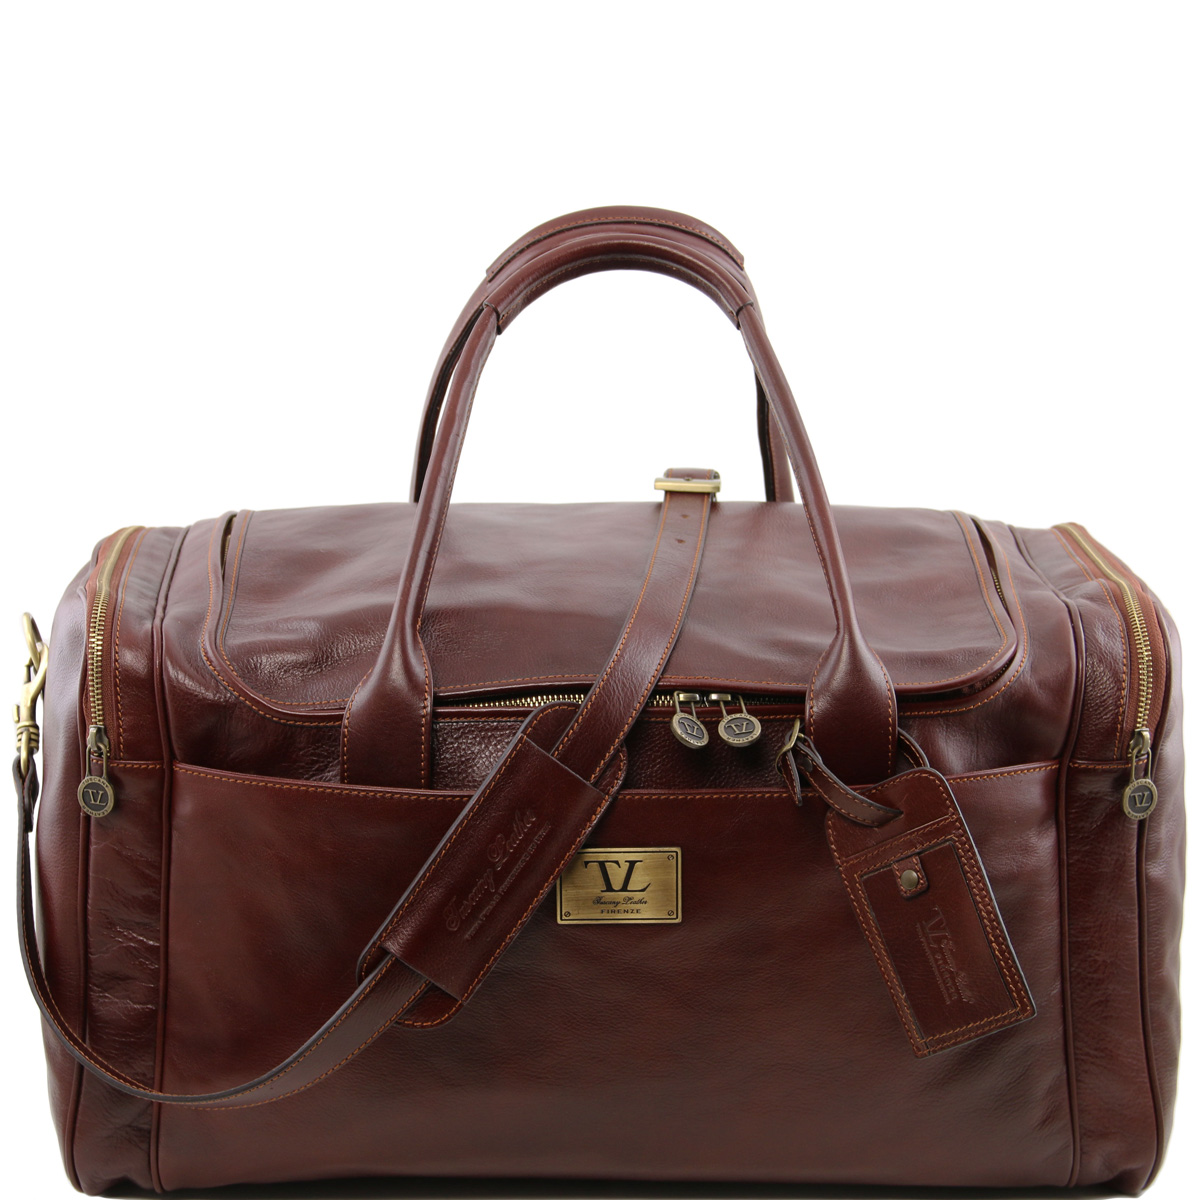 Tuscany Leather Weekend bag TL Voyager